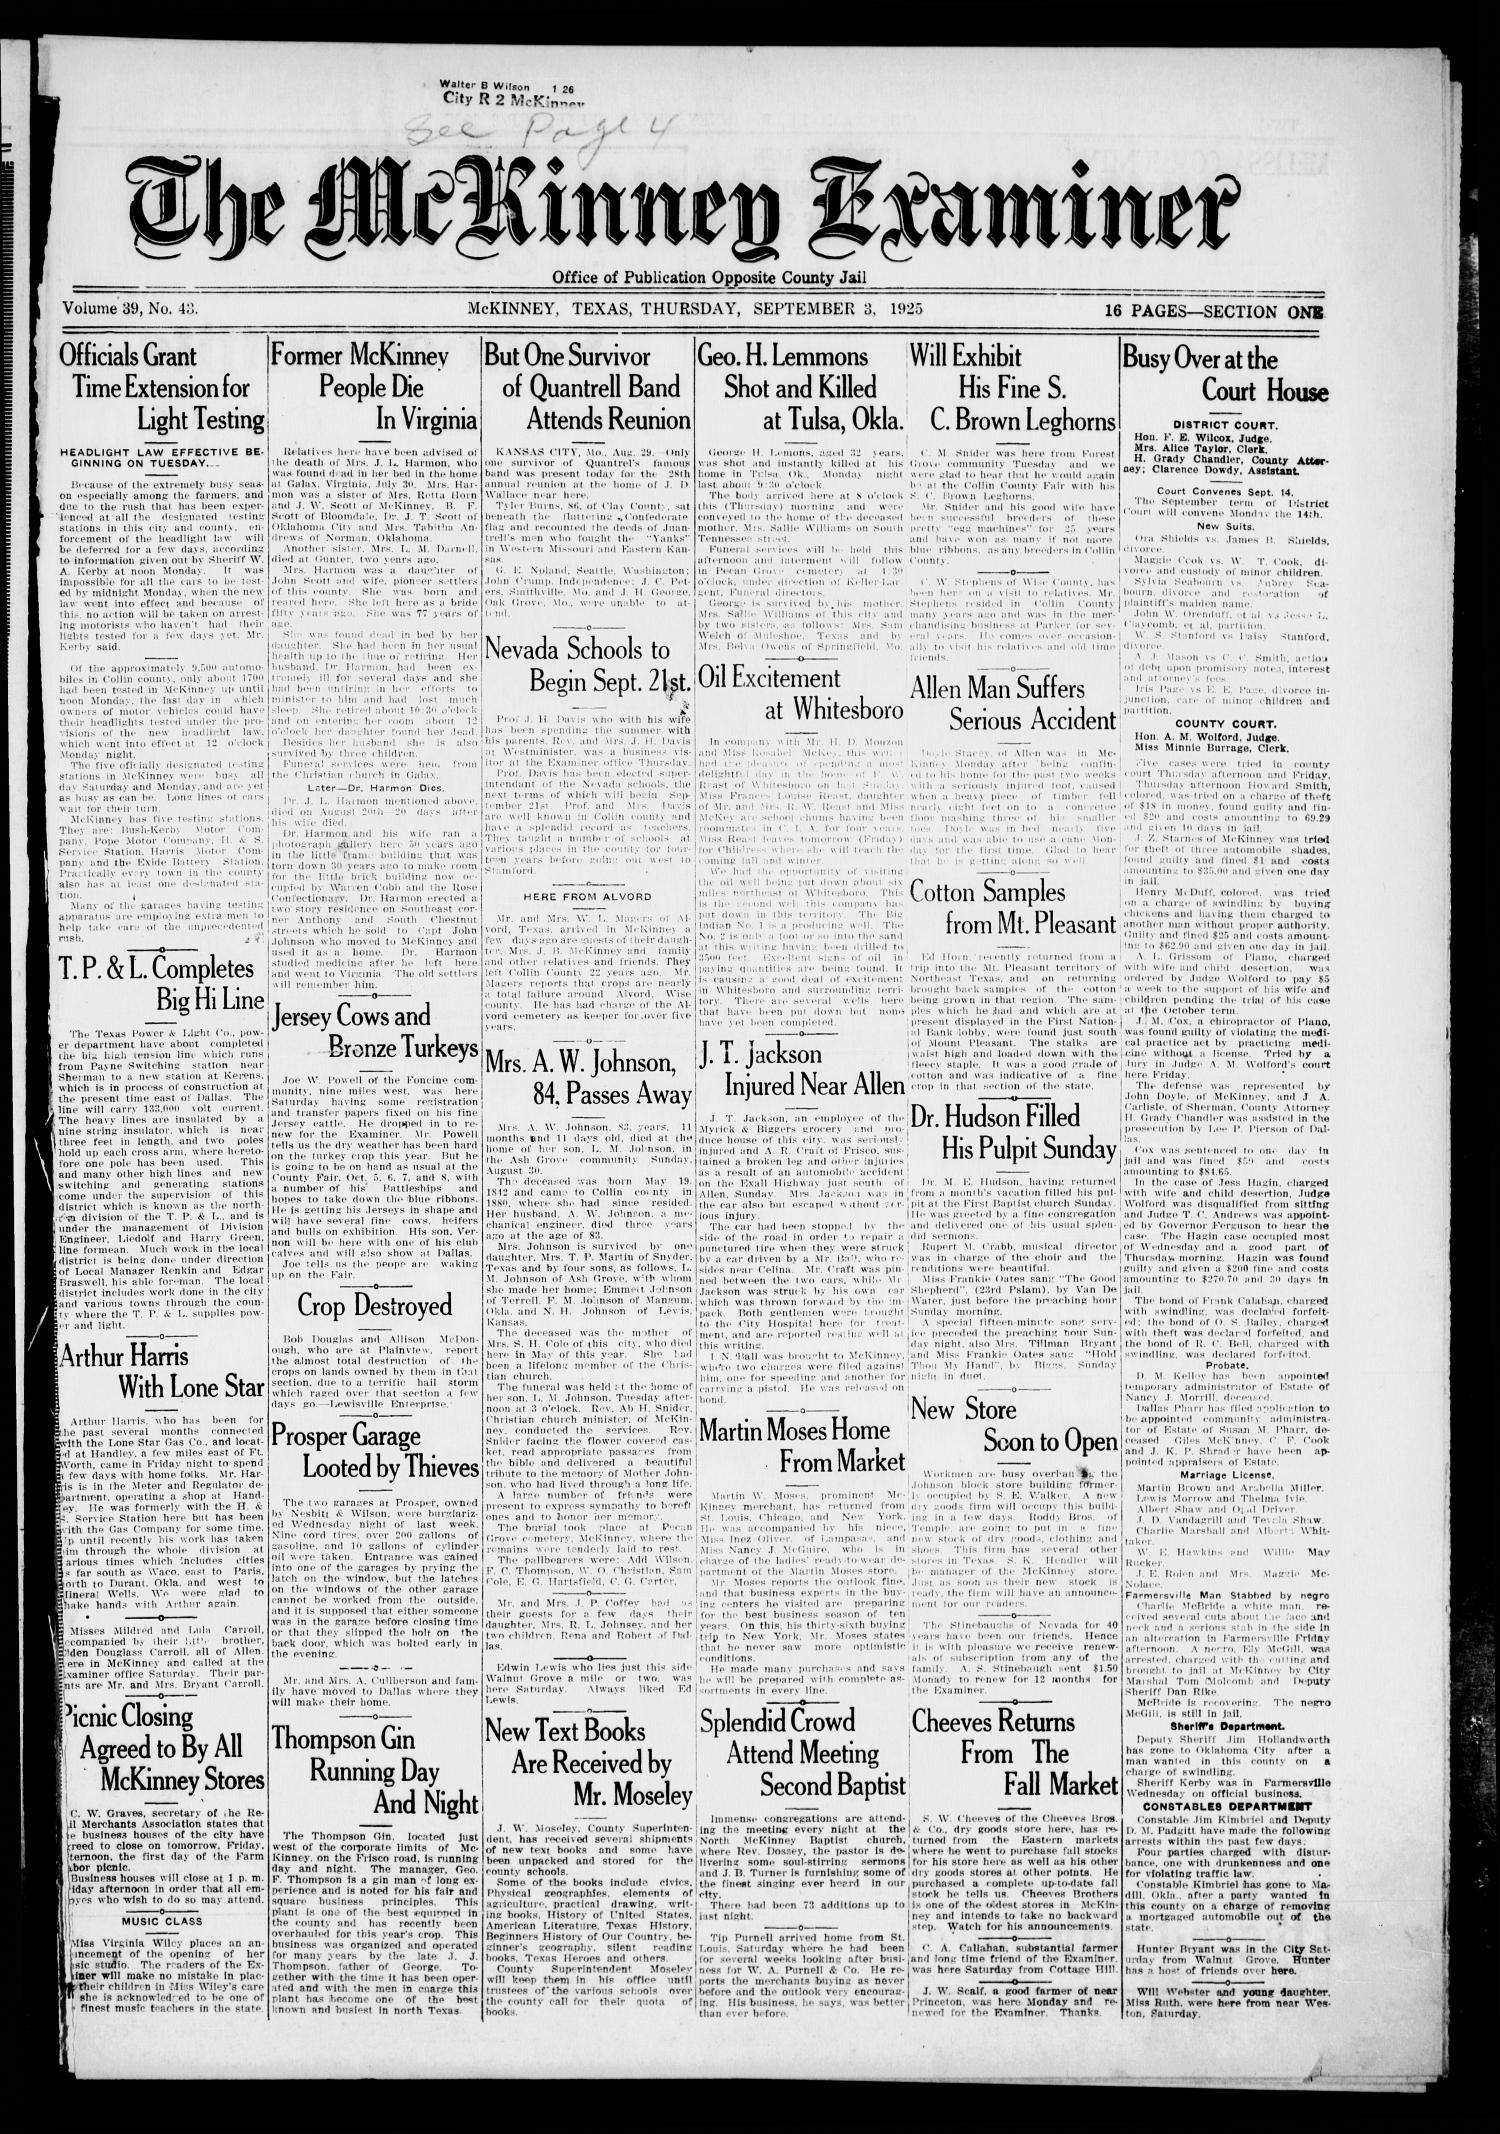 The McKinney Examiner. (McKinney, Tex.), Vol. 39, No. 43, Ed. 1 Thursday, September 3, 1925                                                                                                      [Sequence #]: 1 of 16